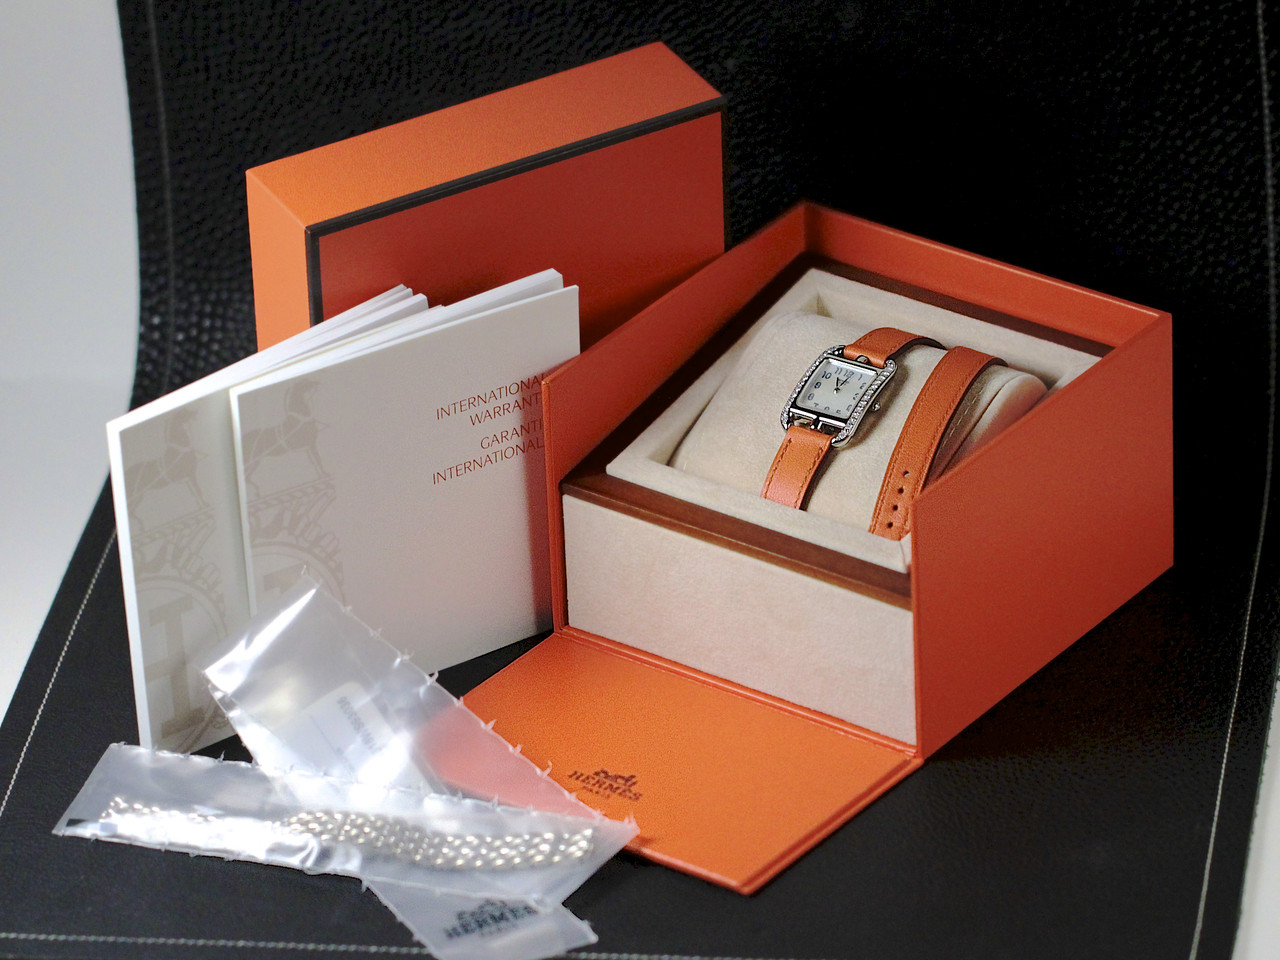 Complete Box & Papers - Hermes Watch - Cape Cod White Gold with Diamonds, Pre-Owned, www.Legendoftime.com - Chicago Watch Center